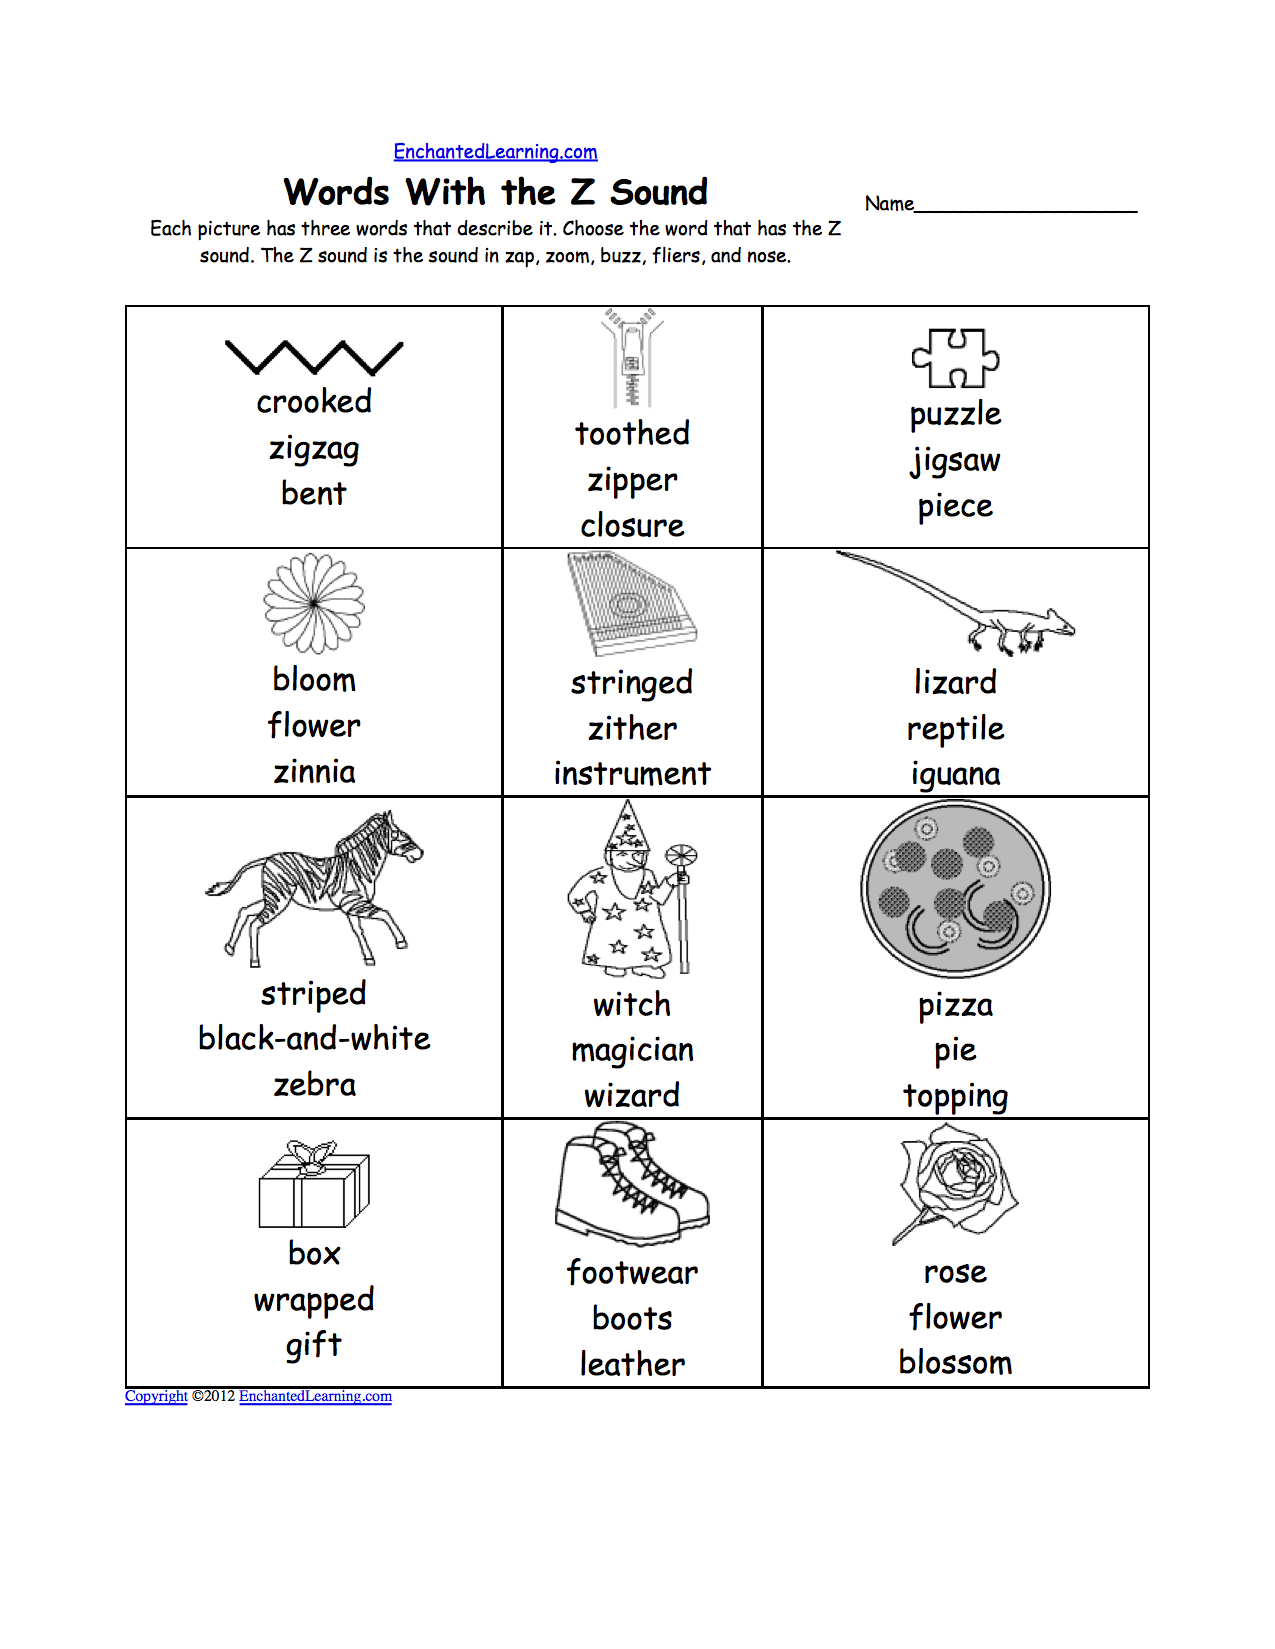 Aldiablosus  Pretty Phonics Worksheets Multiple Choice Worksheets To Print  With Lovable Phonics Worksheets Multiple Choice Worksheets To Print  Enchantedlearningcom With Awesome Long And Short Vowels Worksheets Also Water Cycle Ks Worksheet In Addition Stem And Leaf Worksheet And Cutting Practice Worksheets As Well As Place Value In Decimals Worksheet Additionally Mixtures And Solutions Worksheet Rd Grade From Enchantedlearningcom With Aldiablosus  Lovable Phonics Worksheets Multiple Choice Worksheets To Print  With Awesome Phonics Worksheets Multiple Choice Worksheets To Print  Enchantedlearningcom And Pretty Long And Short Vowels Worksheets Also Water Cycle Ks Worksheet In Addition Stem And Leaf Worksheet From Enchantedlearningcom